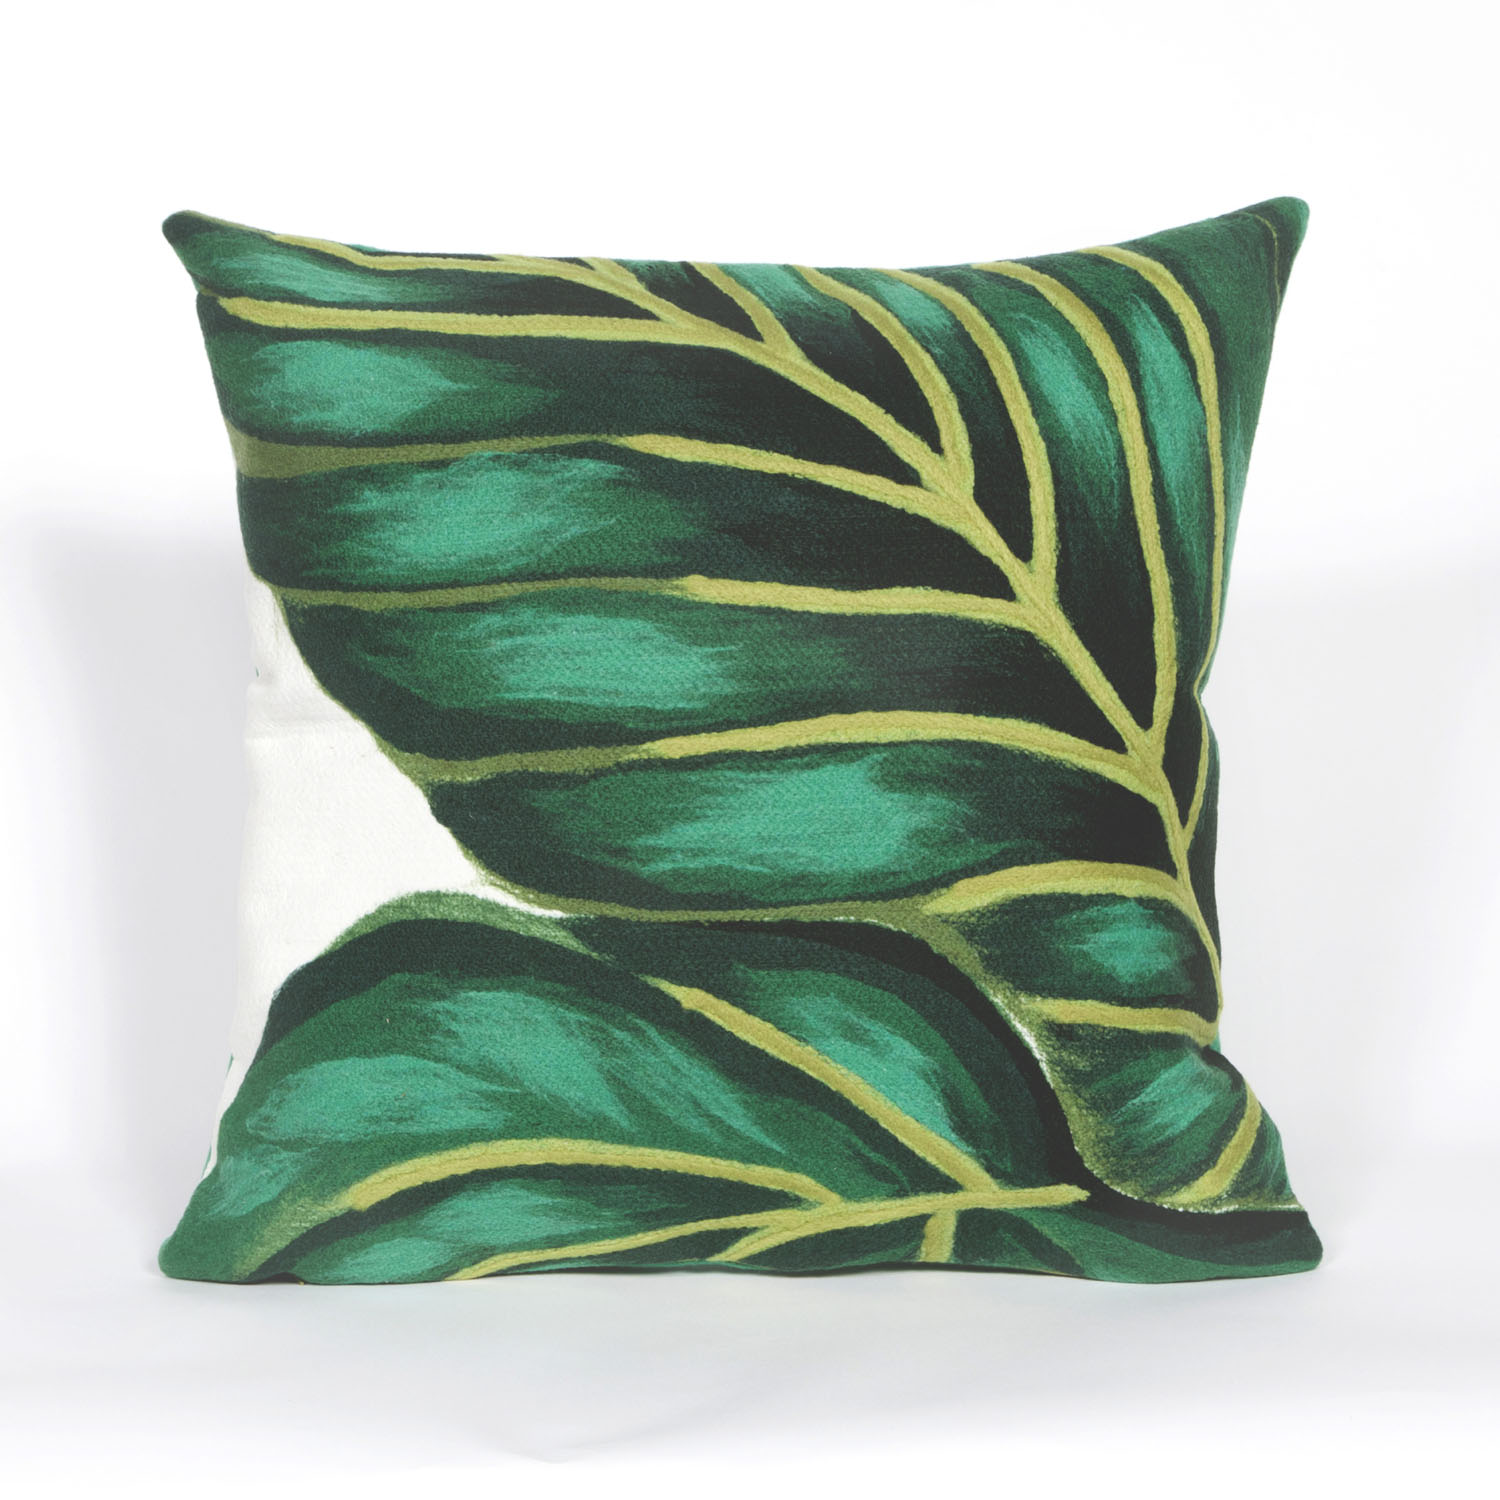 "Visions III Banana Leaf Emerald Pillow-Color:Green,Size:20""Lx20""Wx""H"